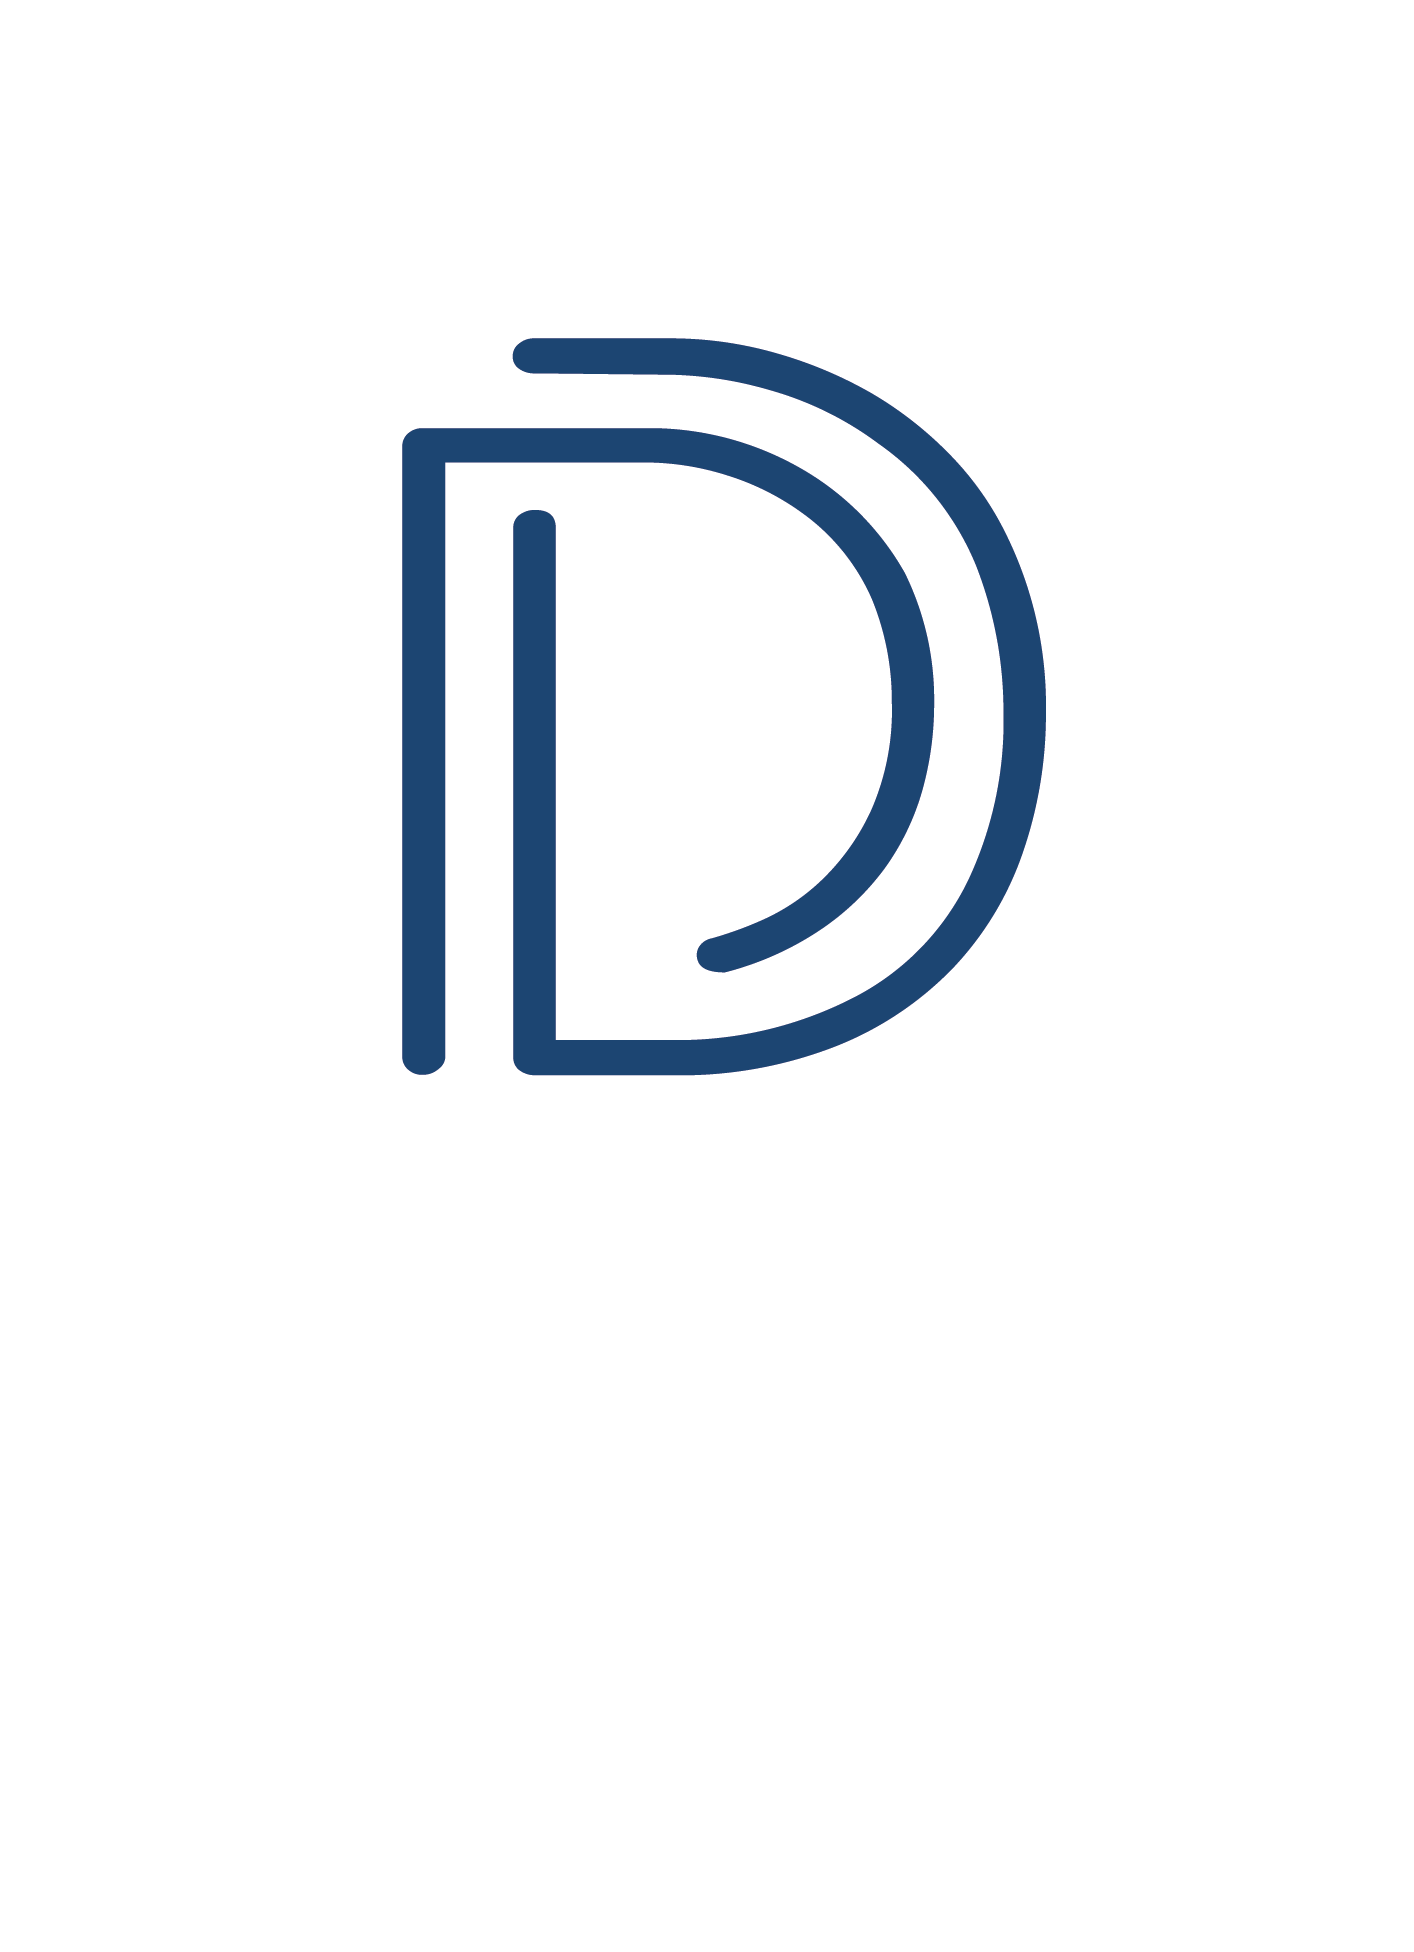 Draper Startup House | 50% Discount on online courses